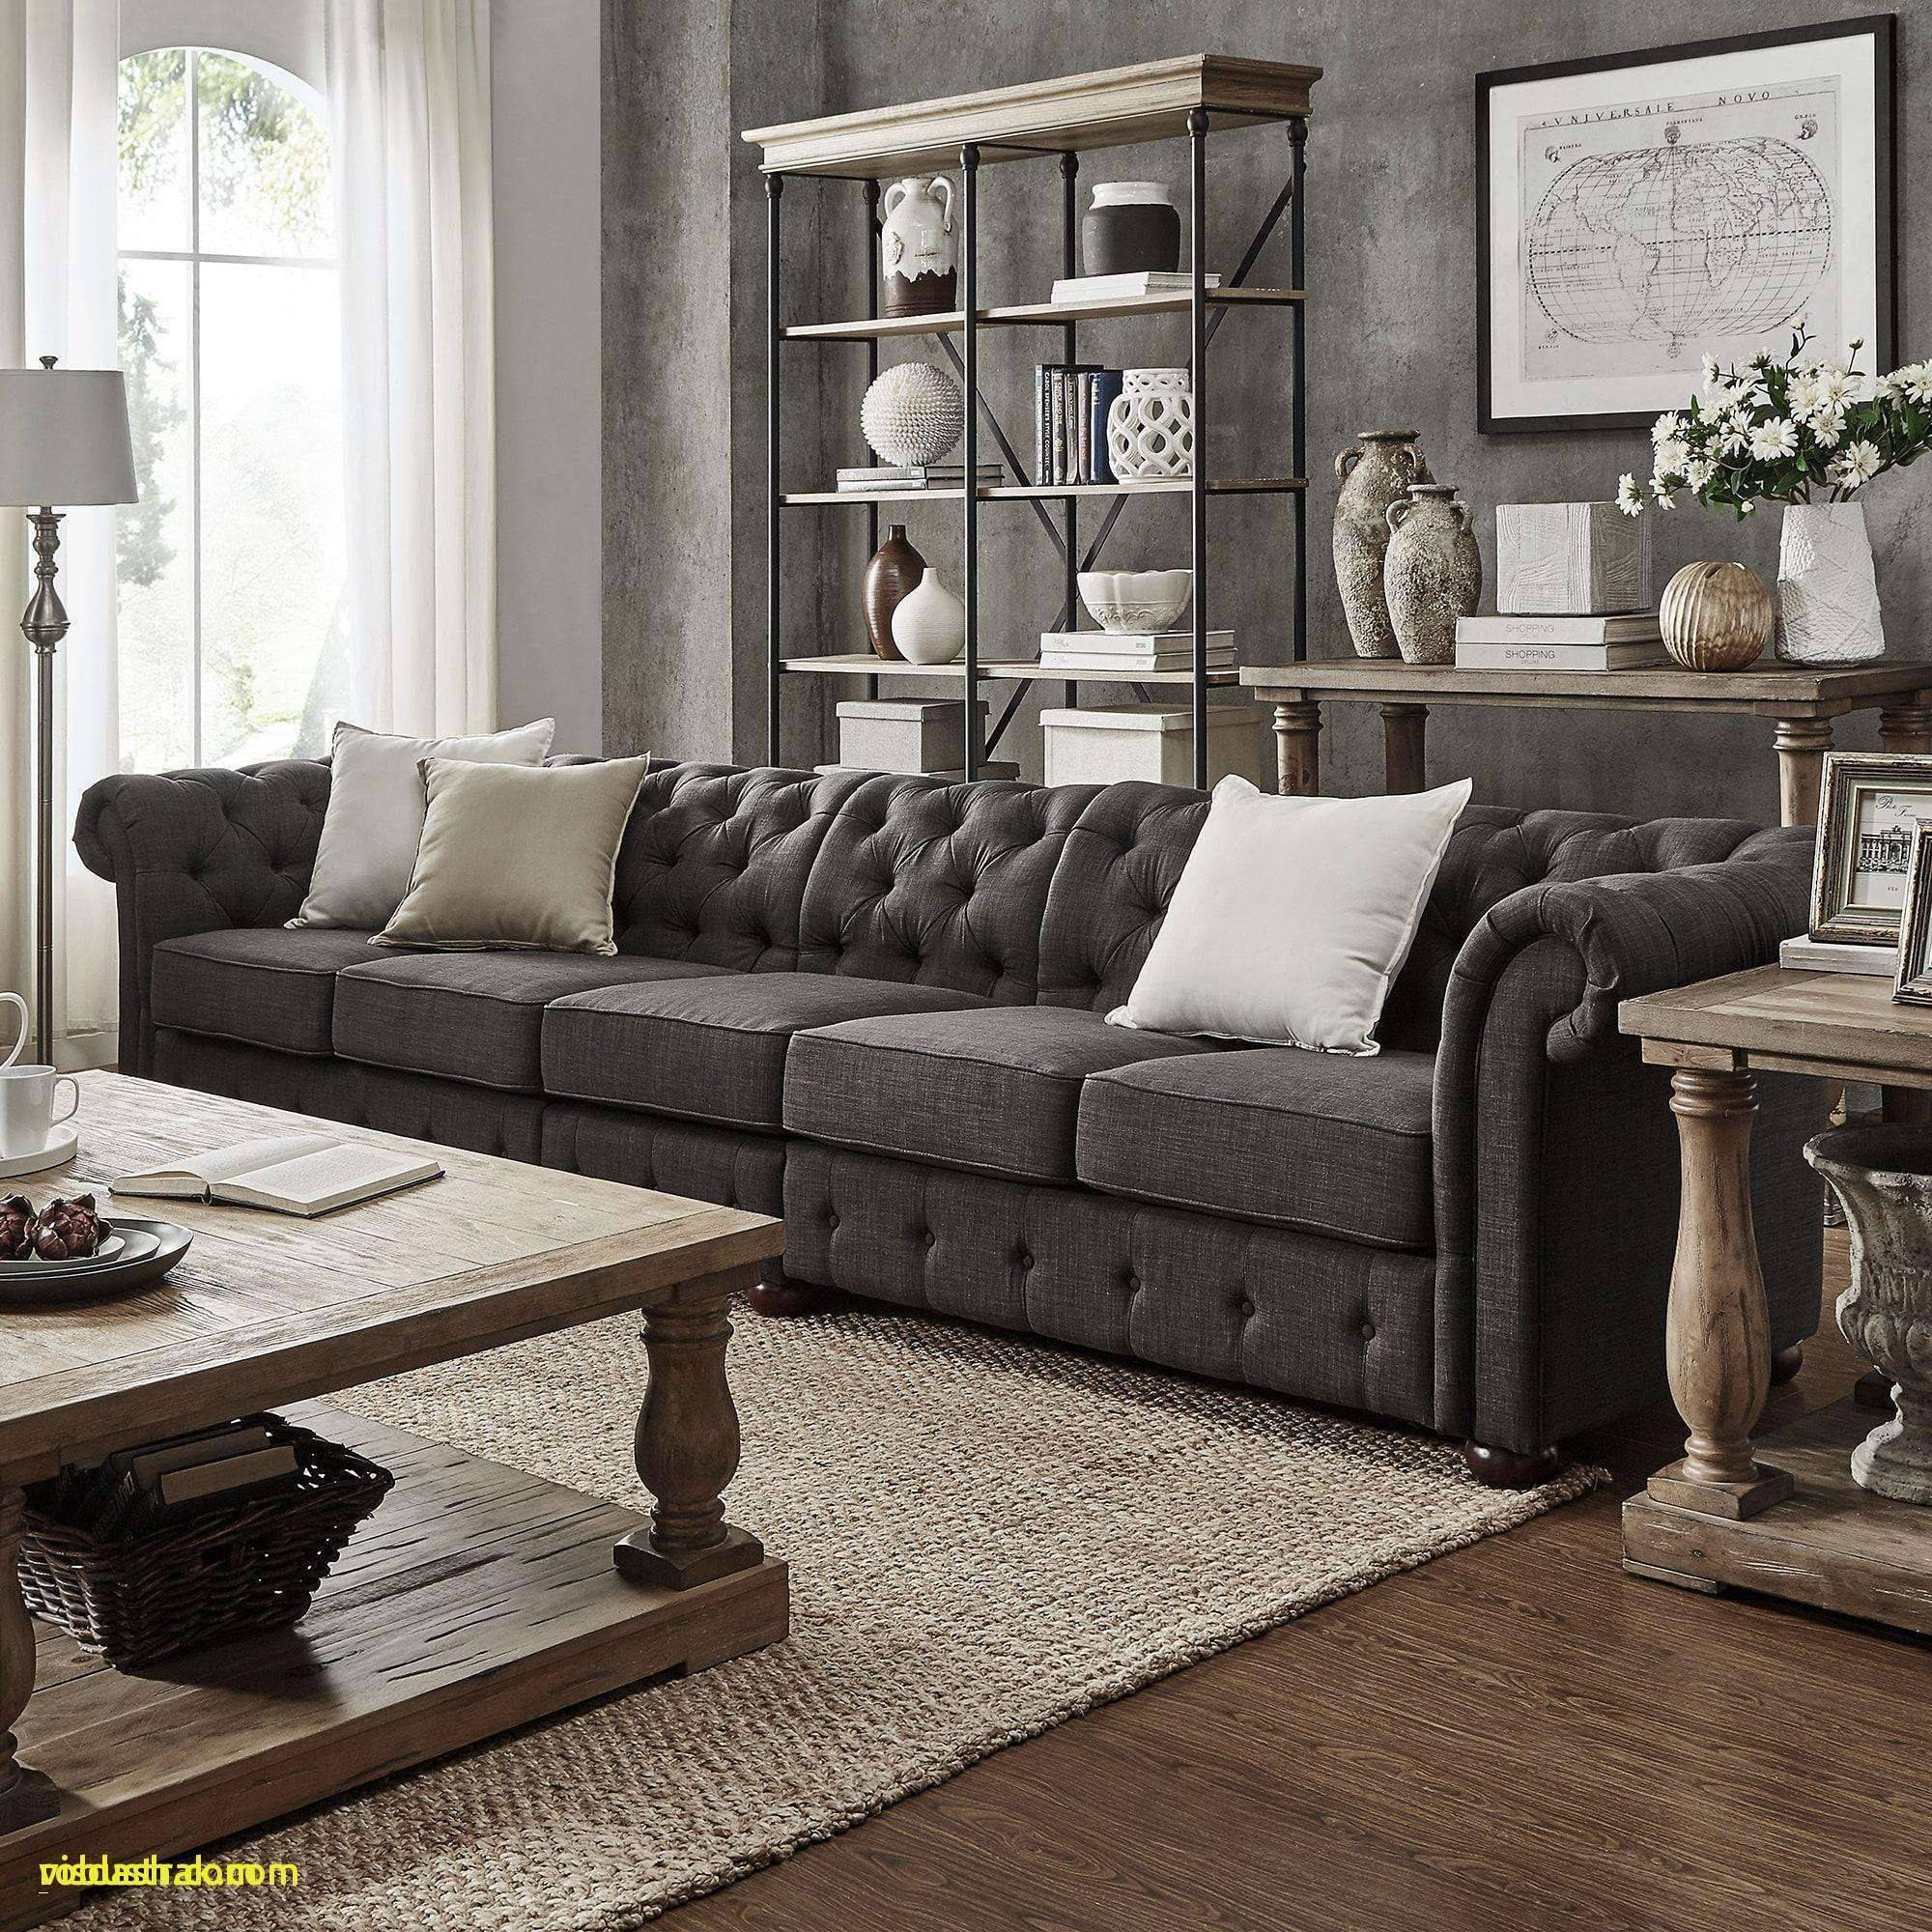 black living room furniture awesome new classic interior home design s beautiful new classic interior home design s of black living room furniture awesome new classic interior home design s 1